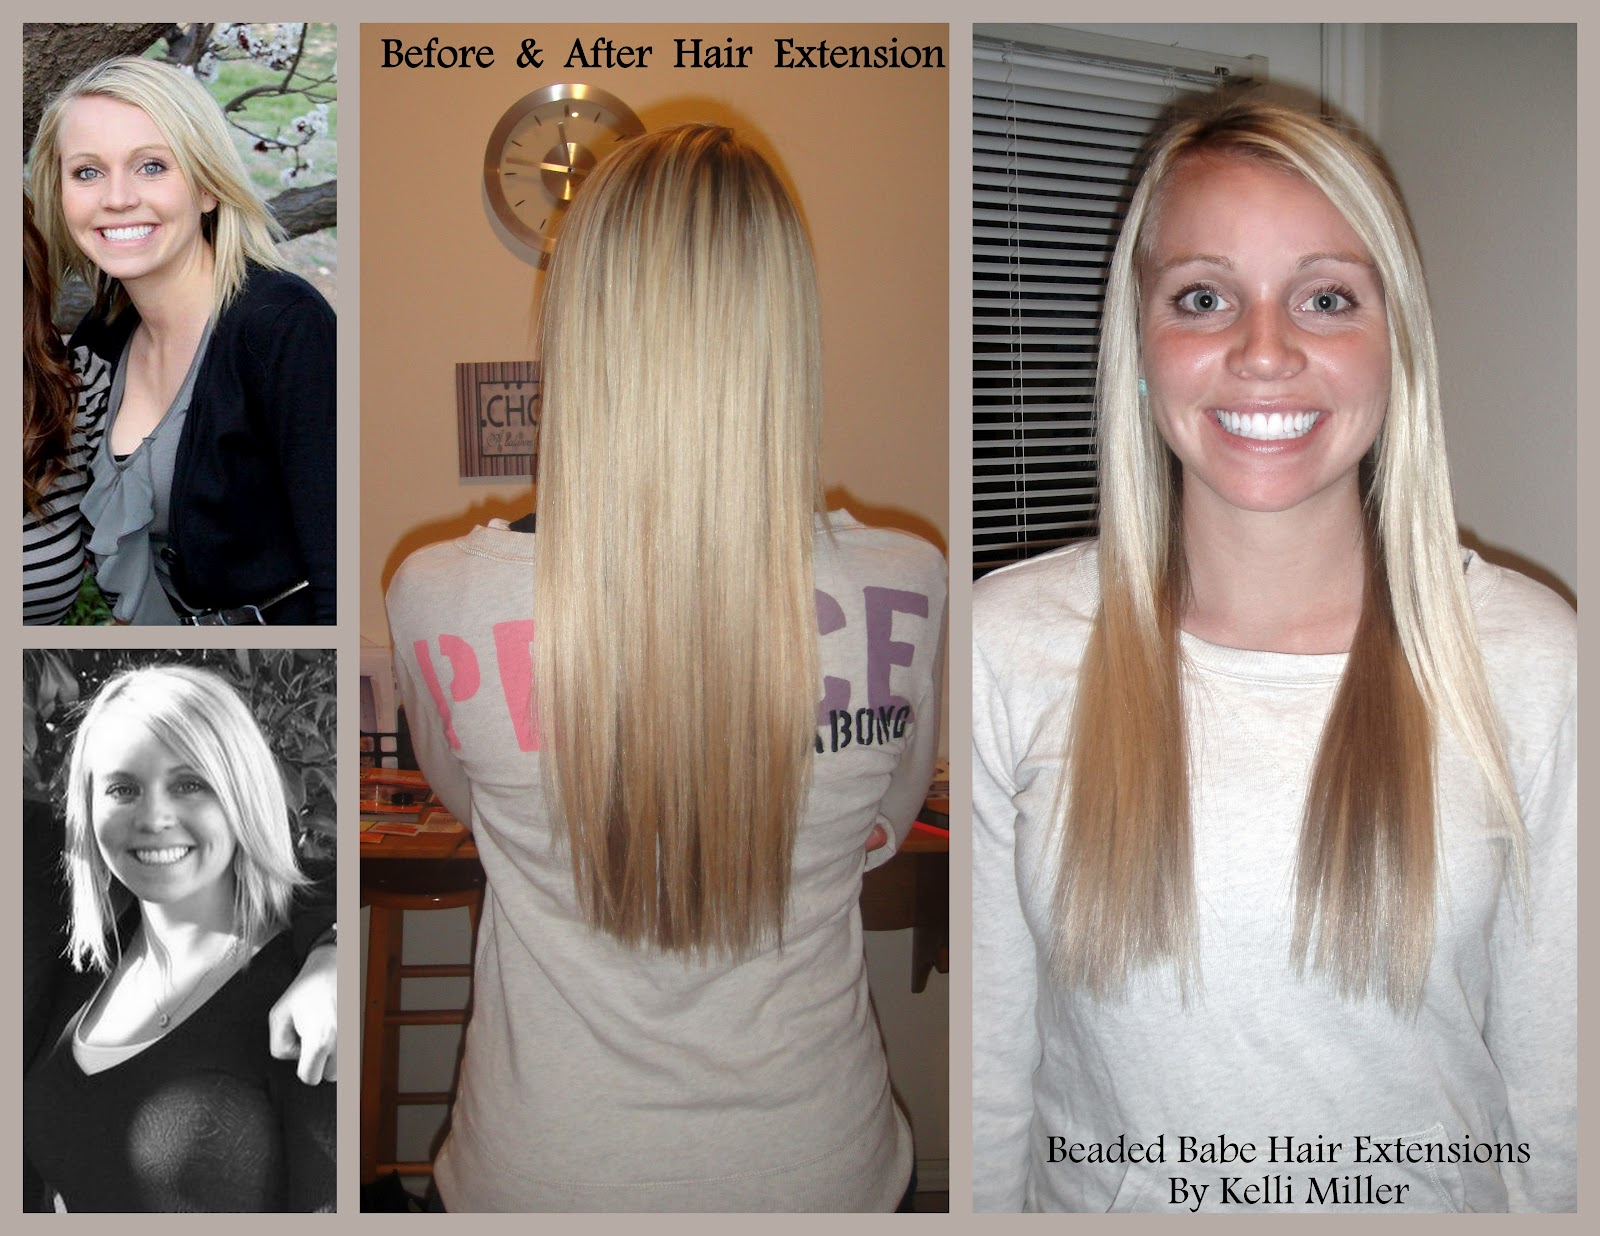 Kelli Miller Beauty Beaded Hair Extensions Chelsea By Kelli Miller